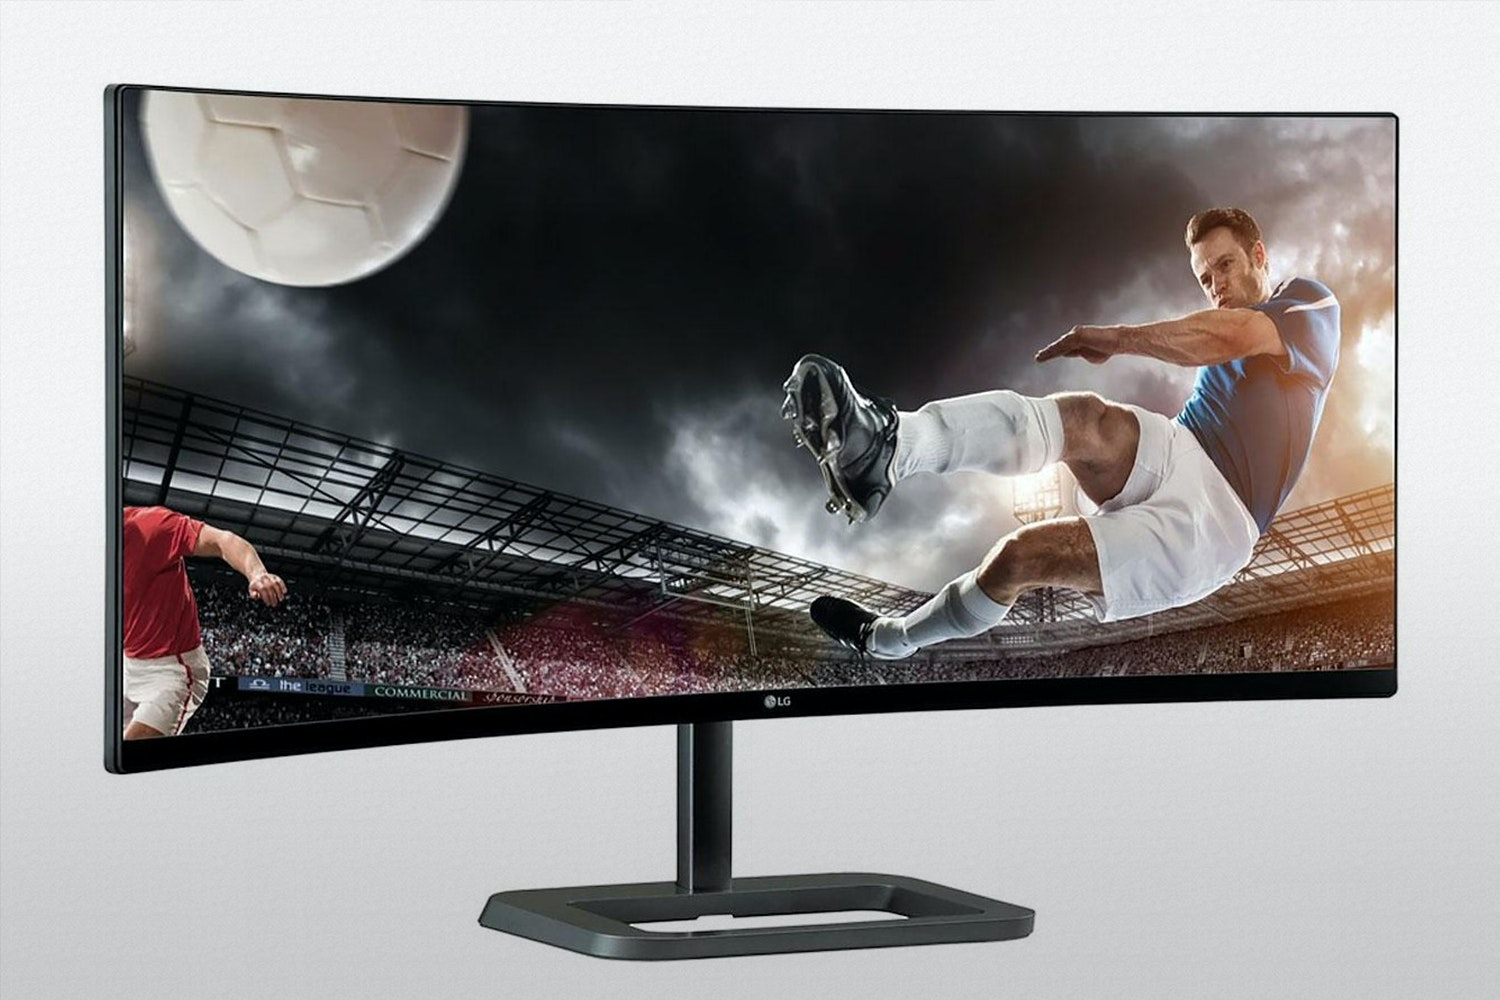 LG 34-inch Curved Ultrawide Monitor 34UC87M-B